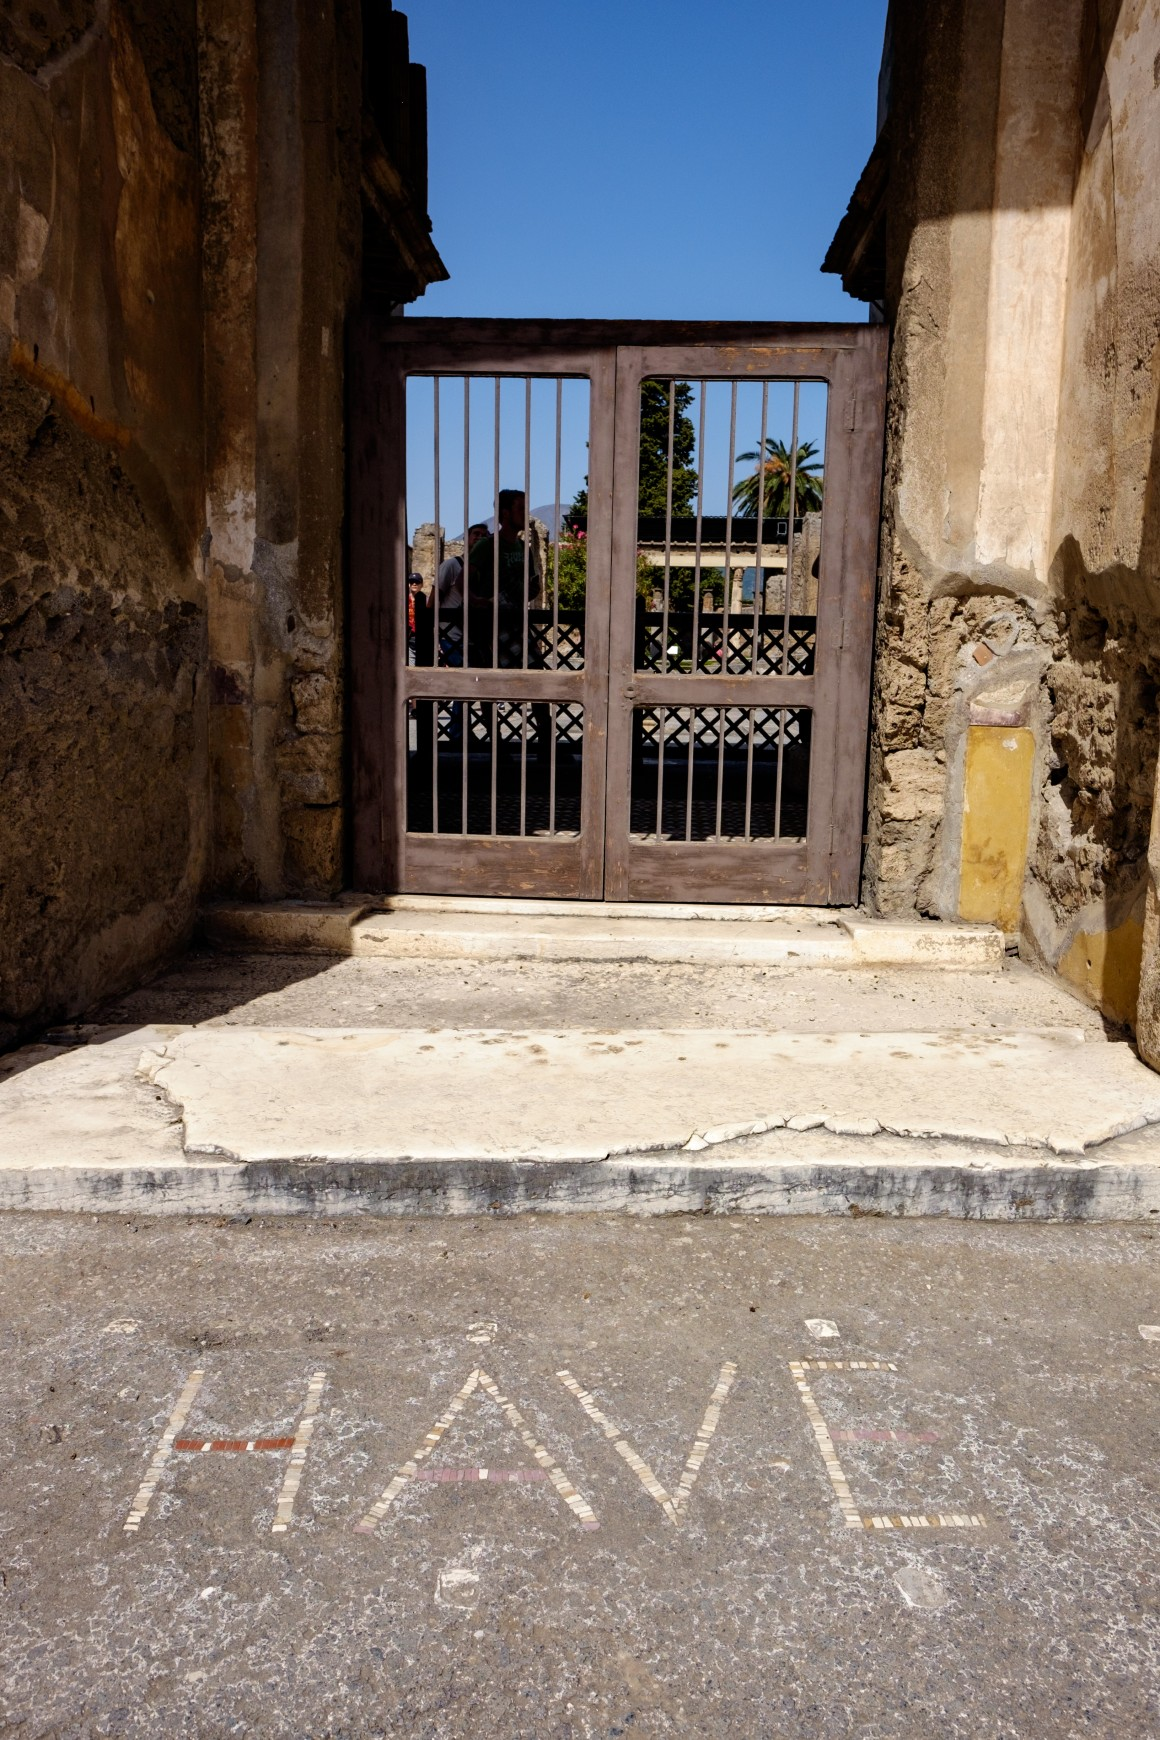 Entrance to House of the Faun